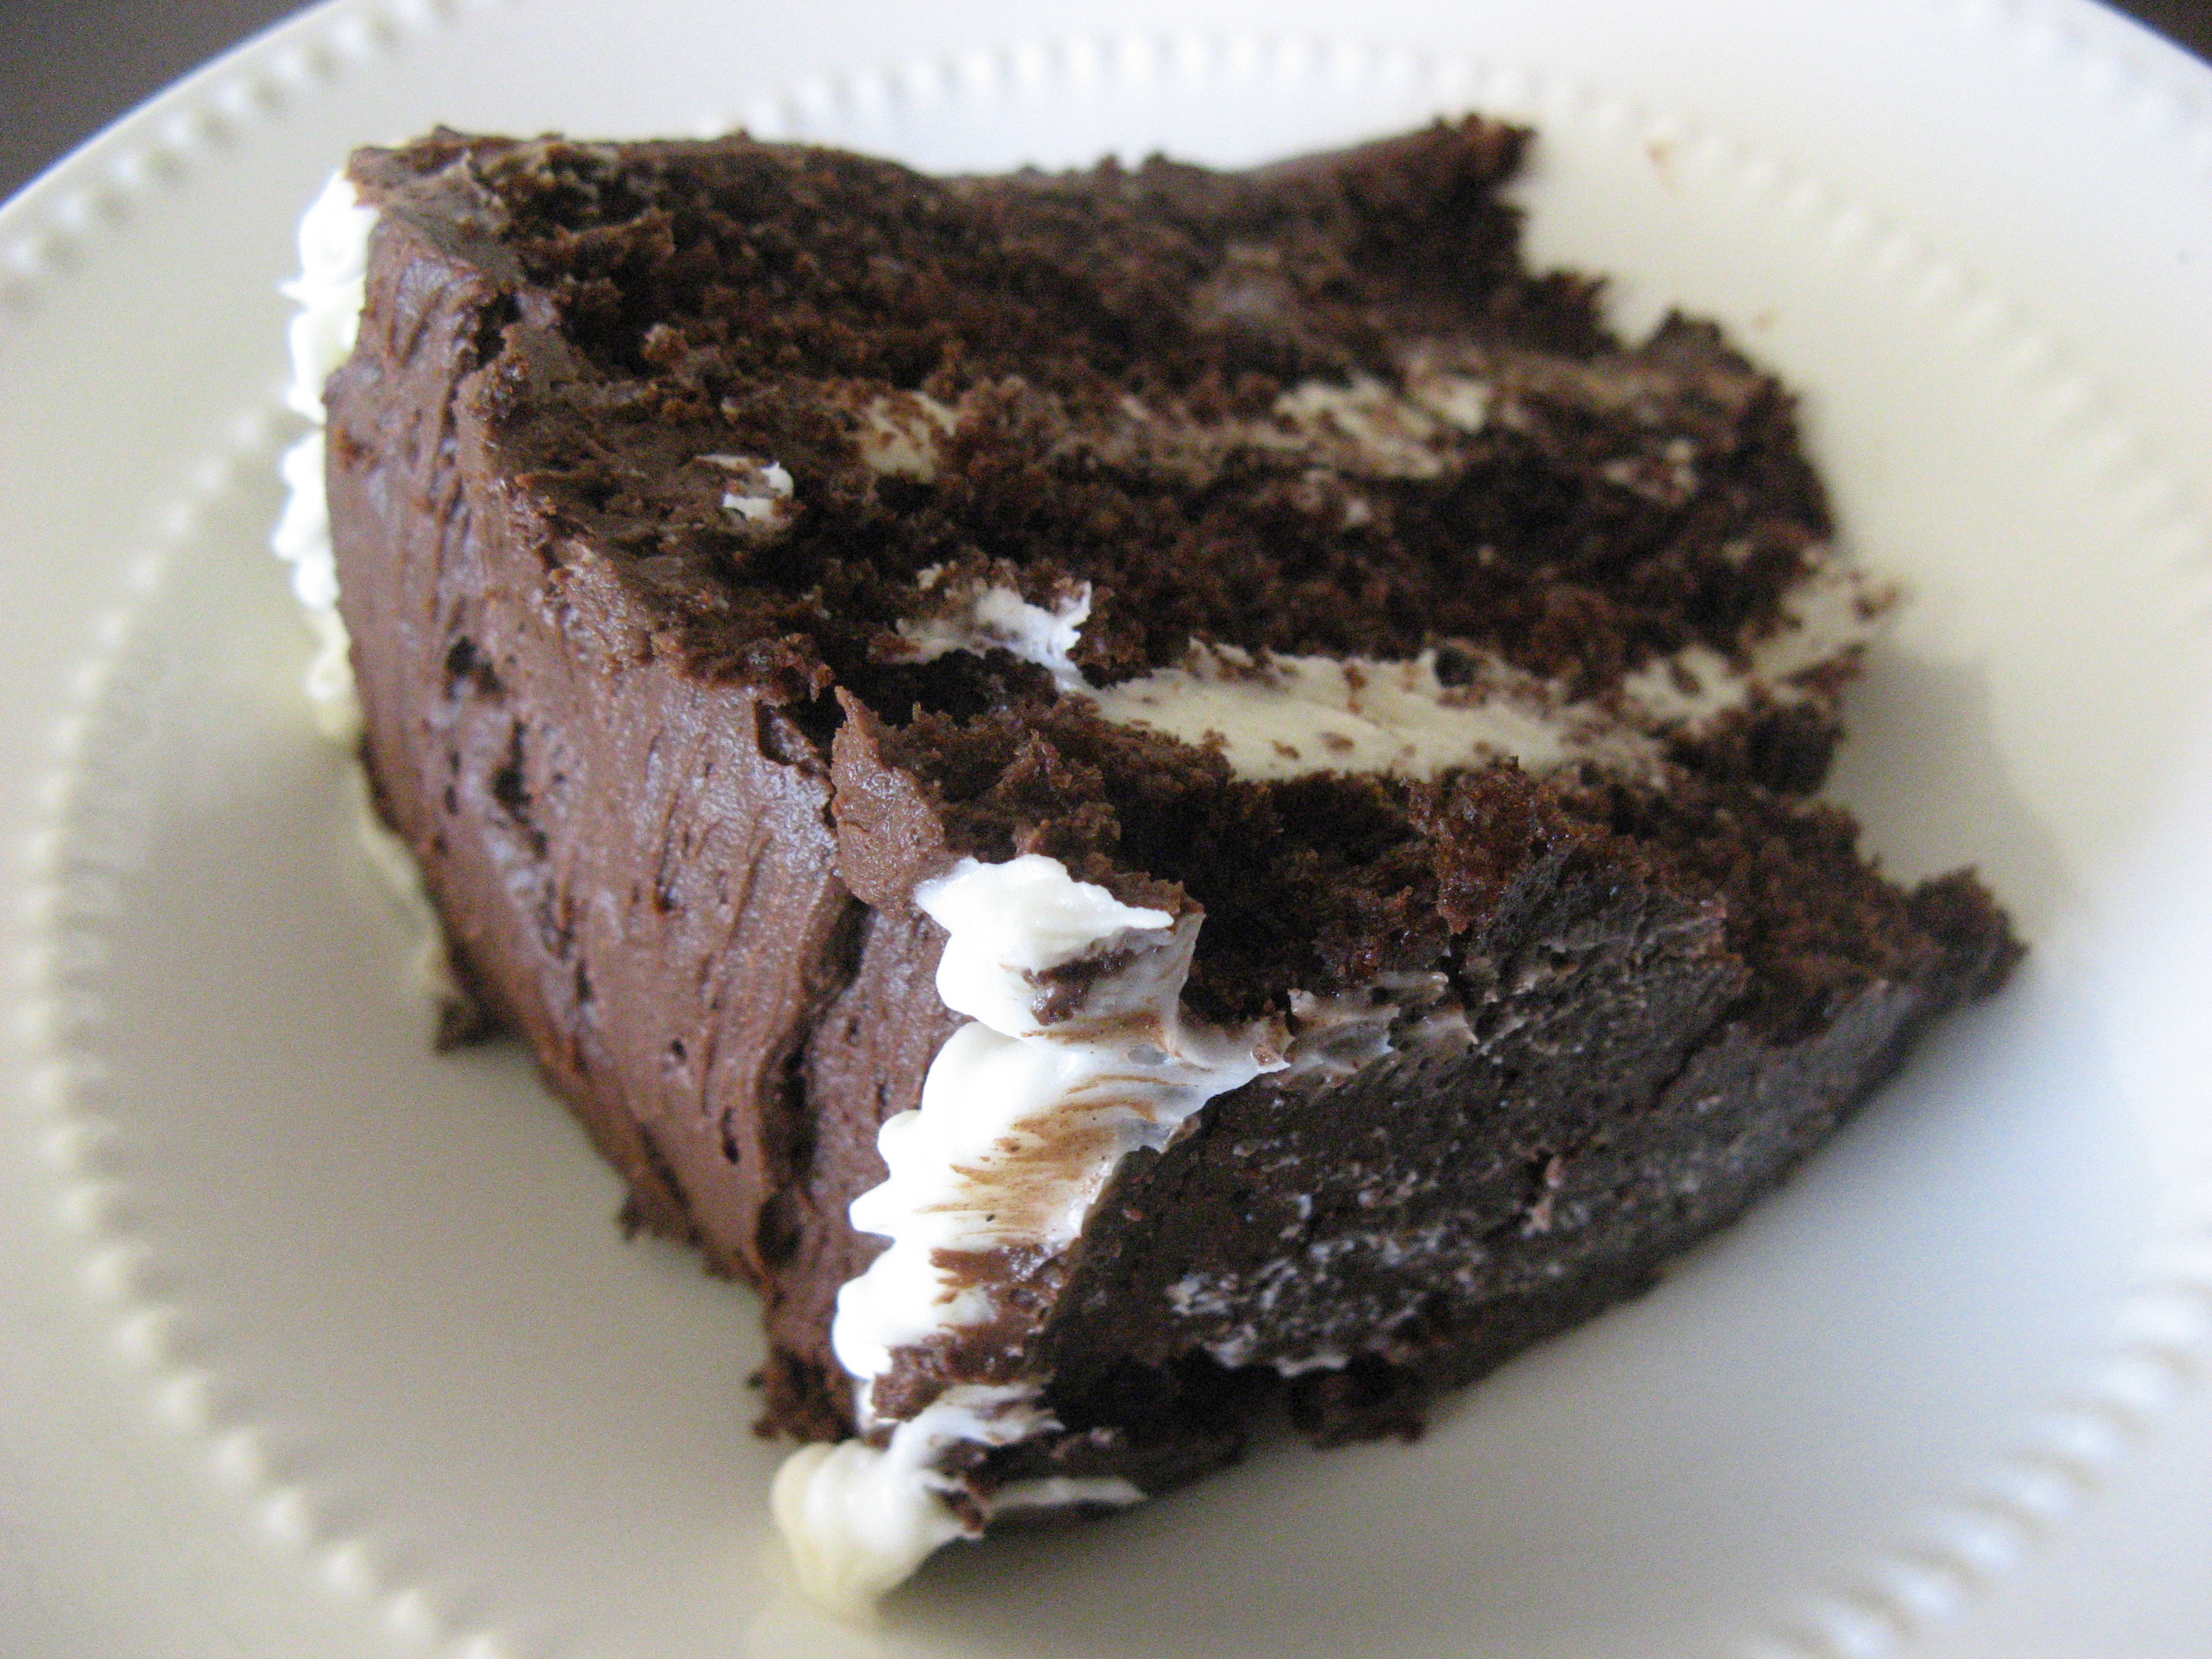 Cake Filling Recipes Without Icing Sugar: Recipe: Chocolate Layer Cake With Cream Cheese Filling And